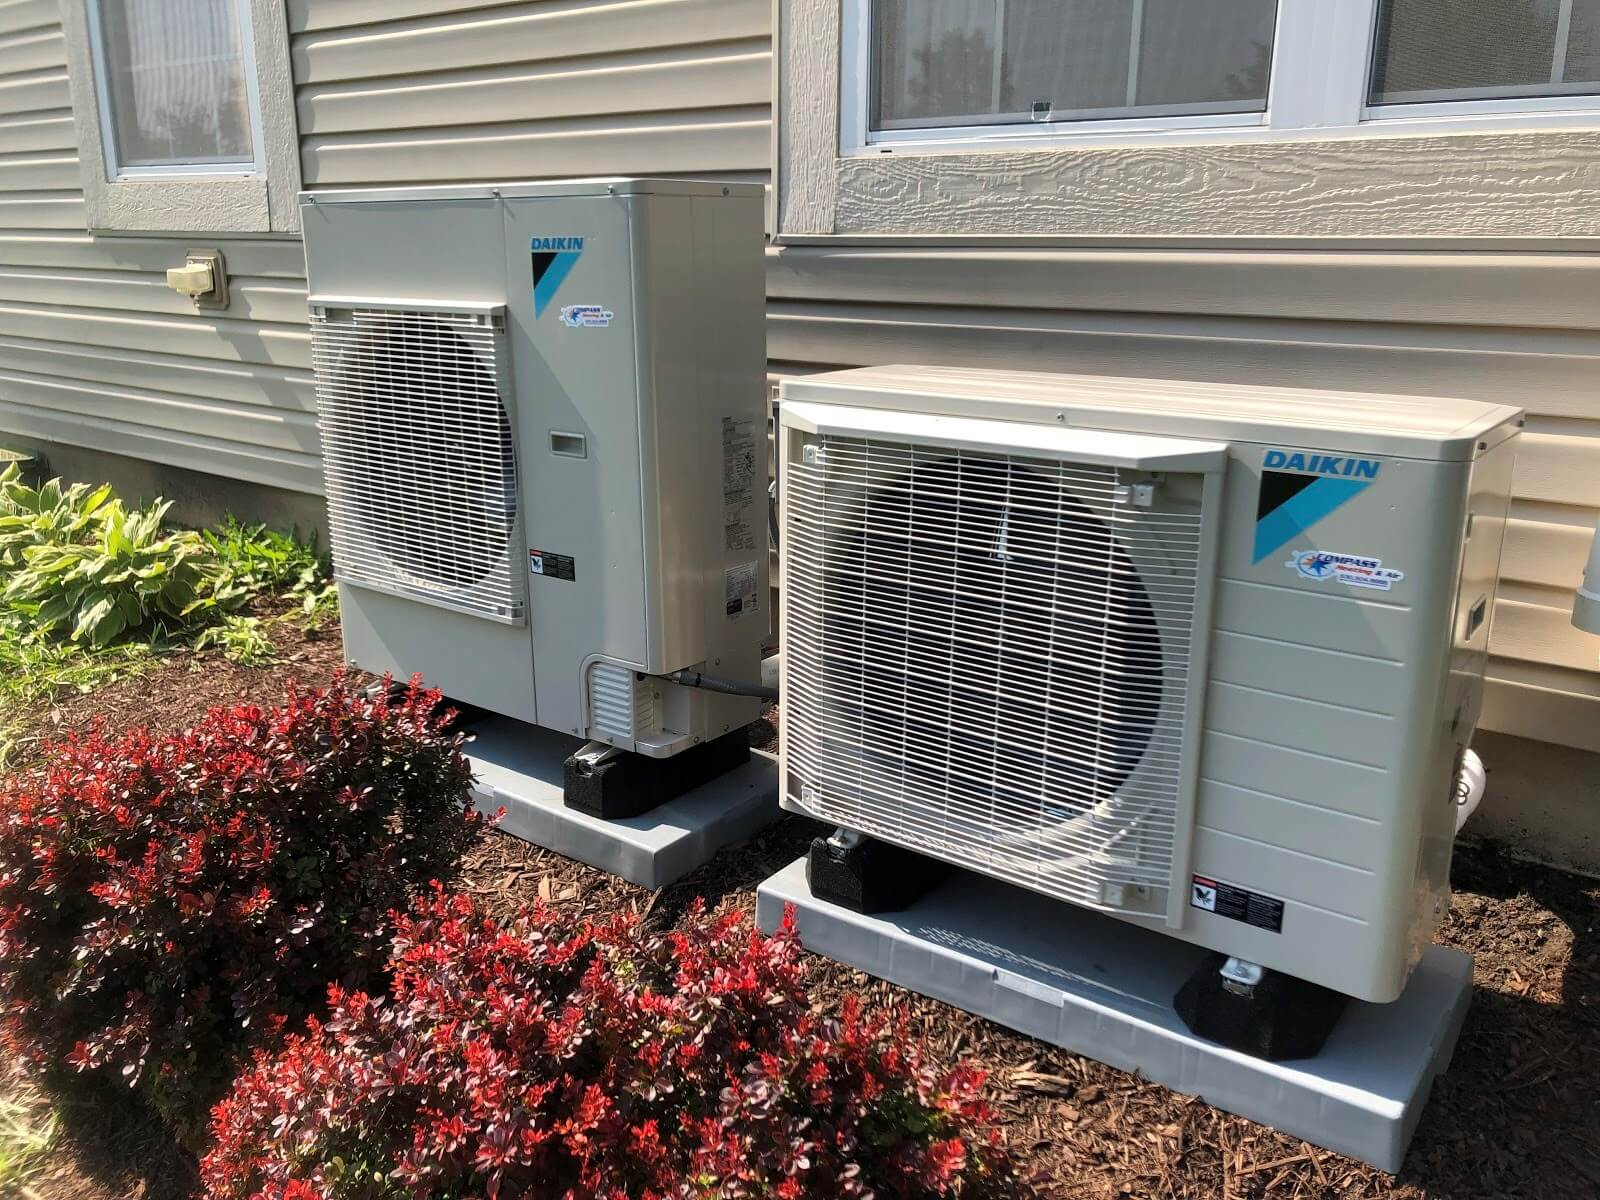 Even if you need 2 condensers, it takes up so much less space because of the size and design